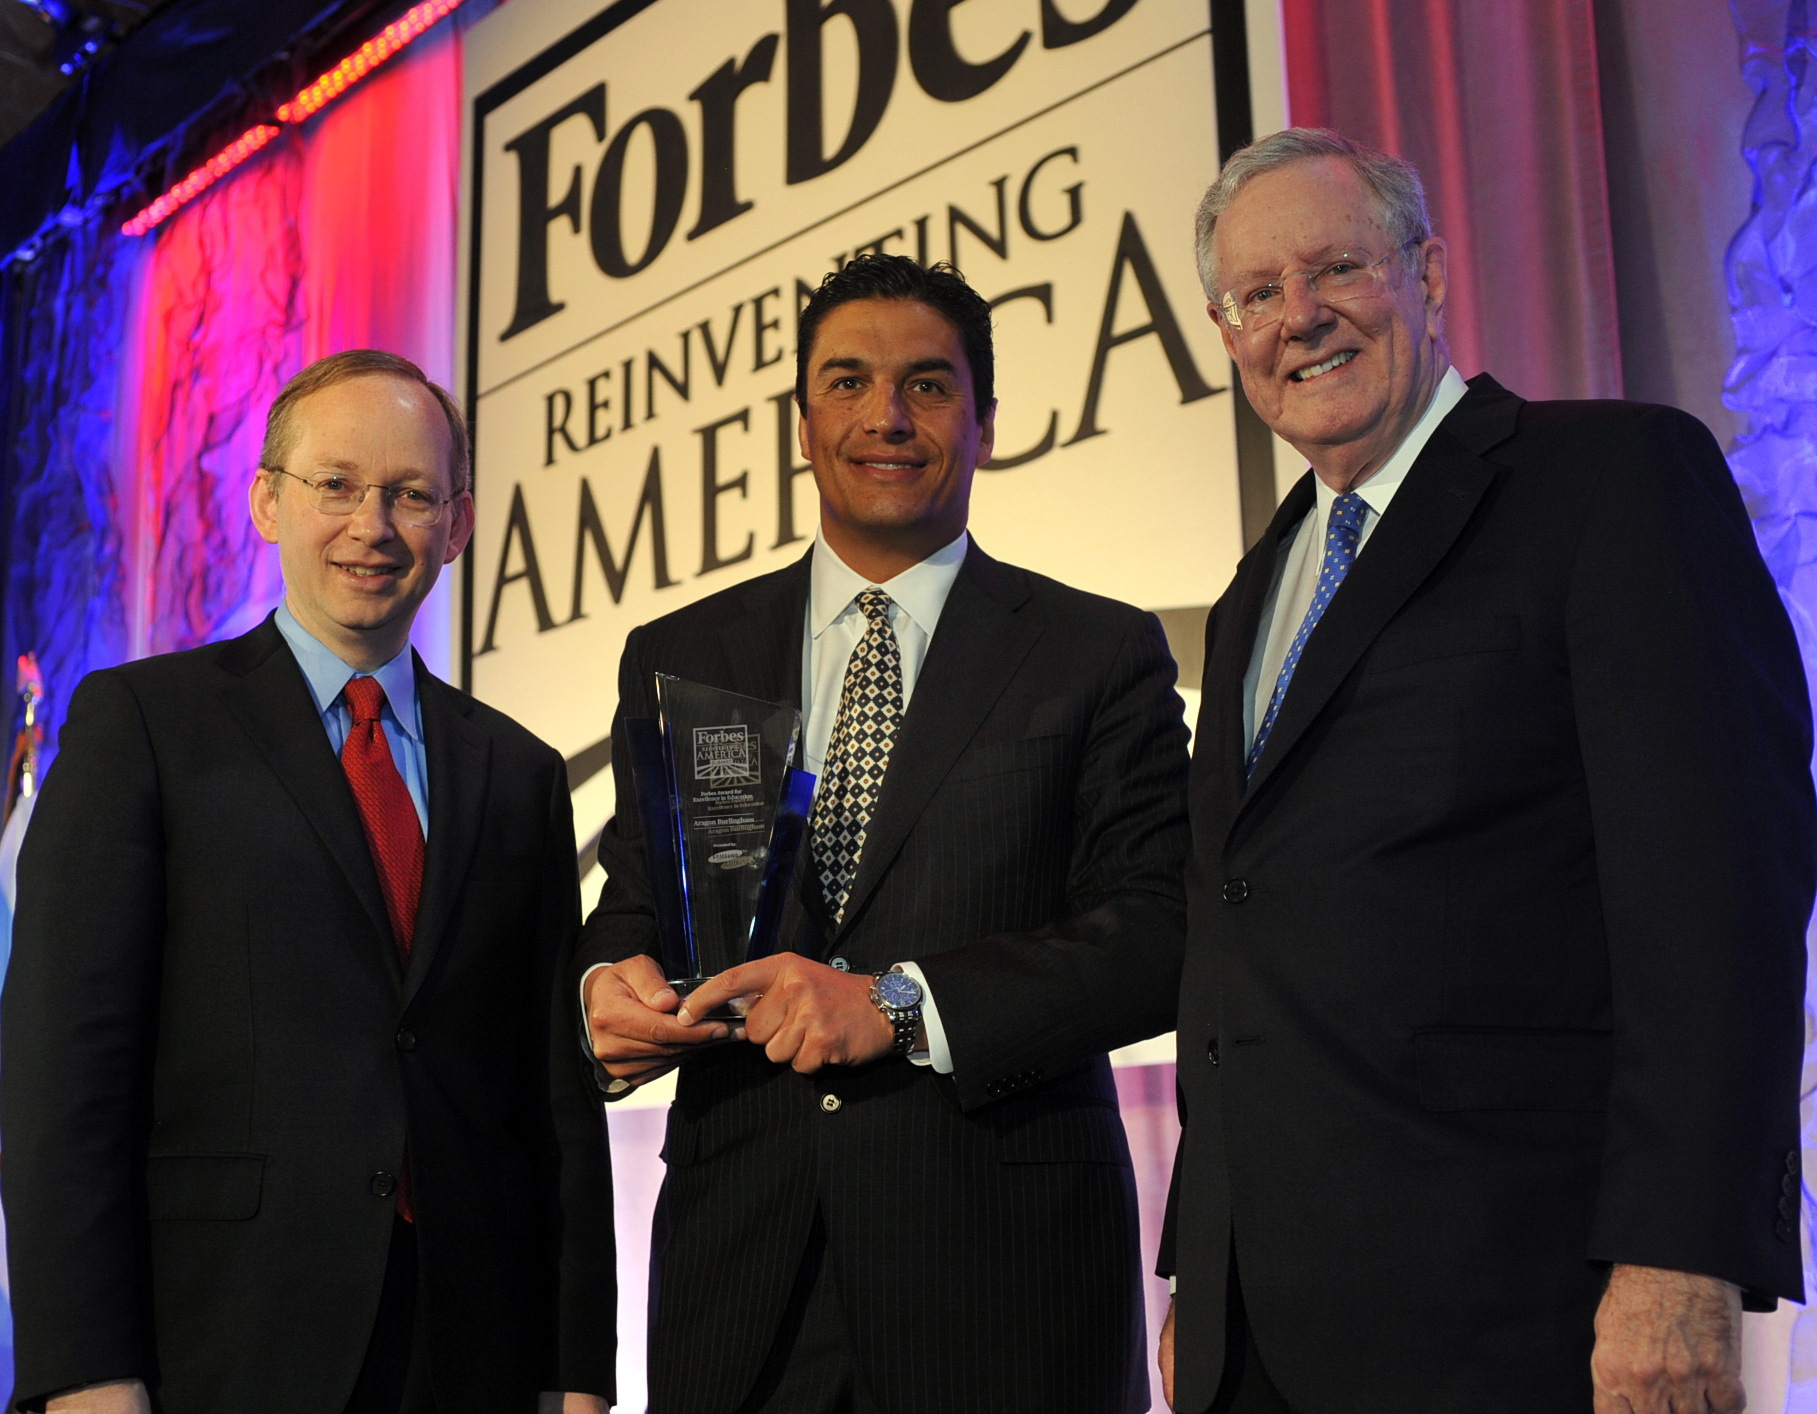 """David Steel (left), Executive Vice President of Samsung Electronics North America, presents the Forbes Excellence Award for Education to Aragon Burlingham (center), Founder and President of We Teach Science Foundation, at the inaugural Forbes Reinventing America Summit held in Chicago, IL, March 26-March 28, 2014, and hosted by Steve Forbes (right), Chairman and Editor-in-Chief of Forbes Media. """"Samsung applauds Mr. Burlingham's efforts to build a bridge between public school students and private sector STEM professionals to help American students succeed,"""" said David Steel. (Photo: Business Wire)"""